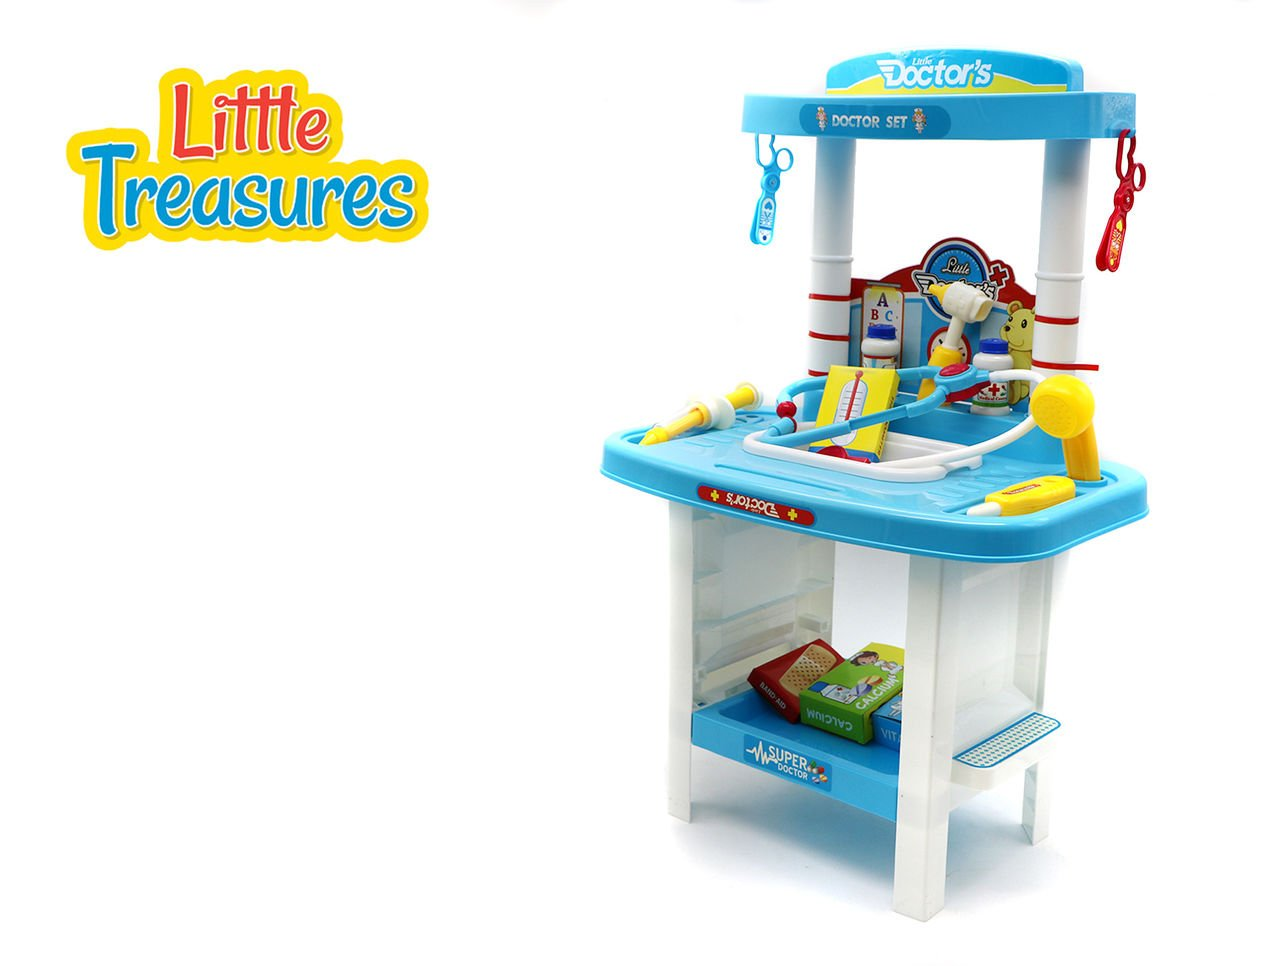 Little Doctors Set 24+ Pieces with Comprehensive Set of Dr Play Medical Equipment and Accessories